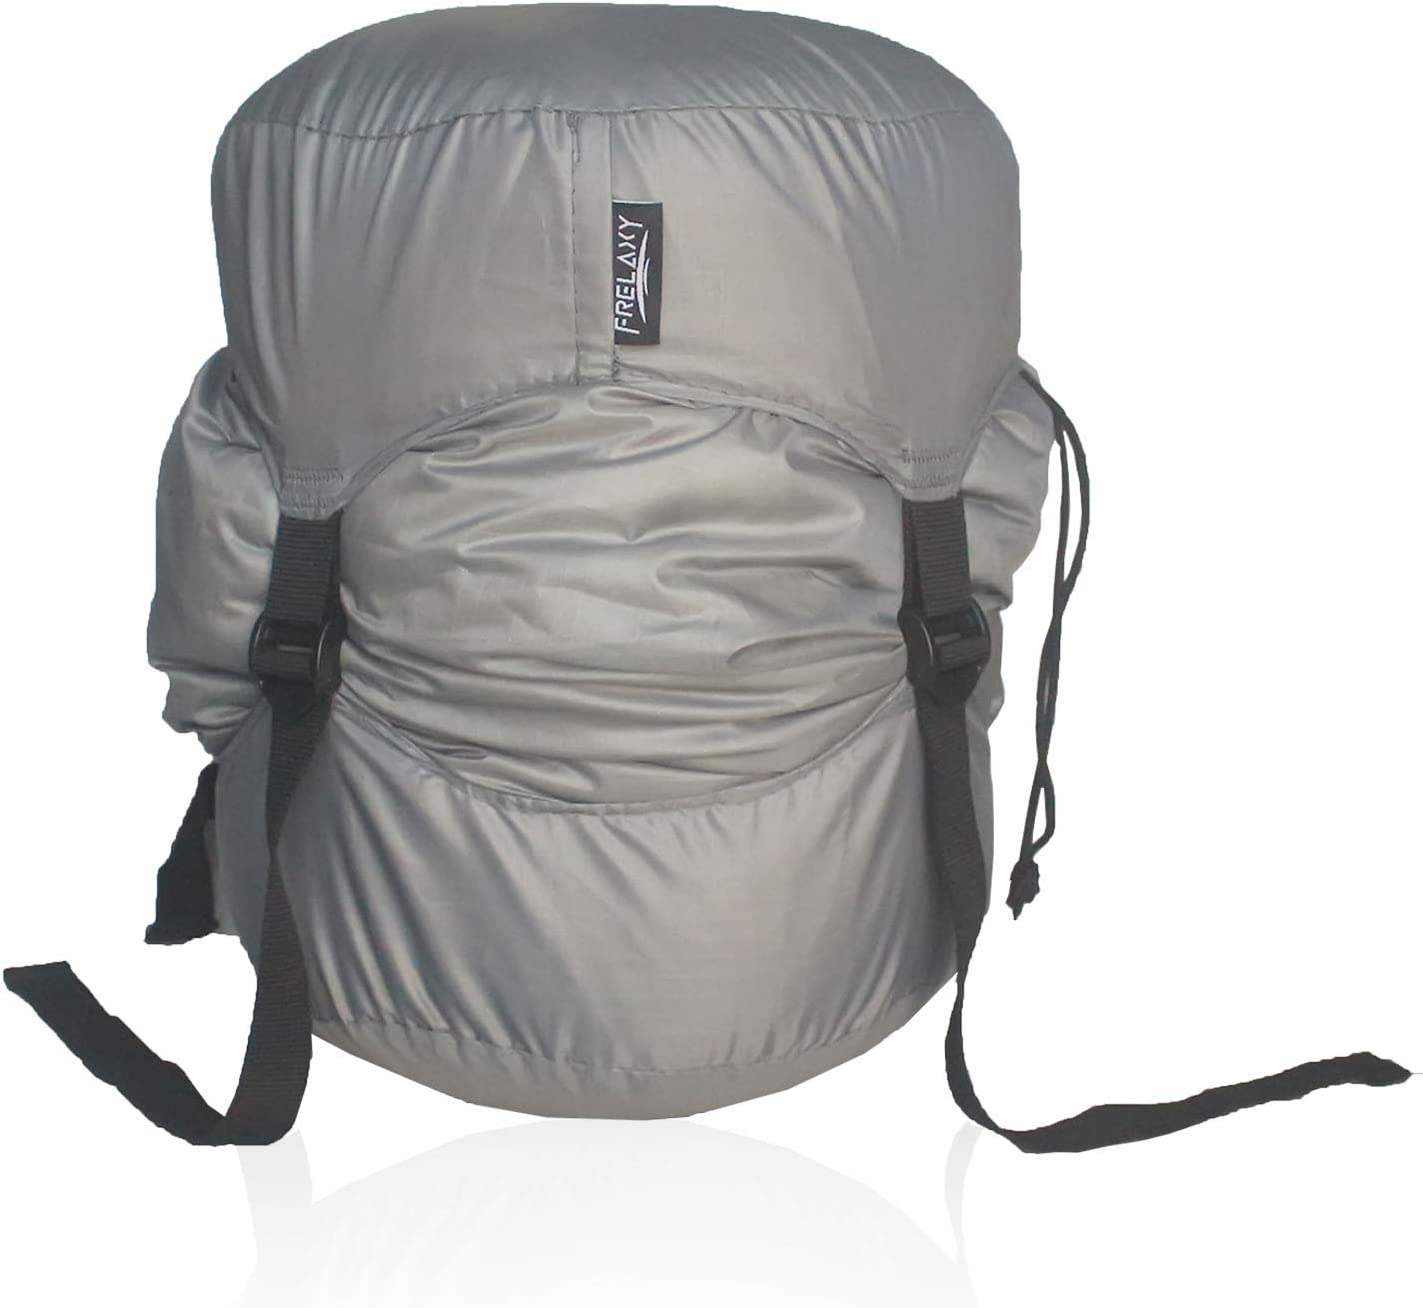 Courier shipping free shipping Frelaxy Compression Sack Ultralight Stuff Superior 40 Bag Sleeping